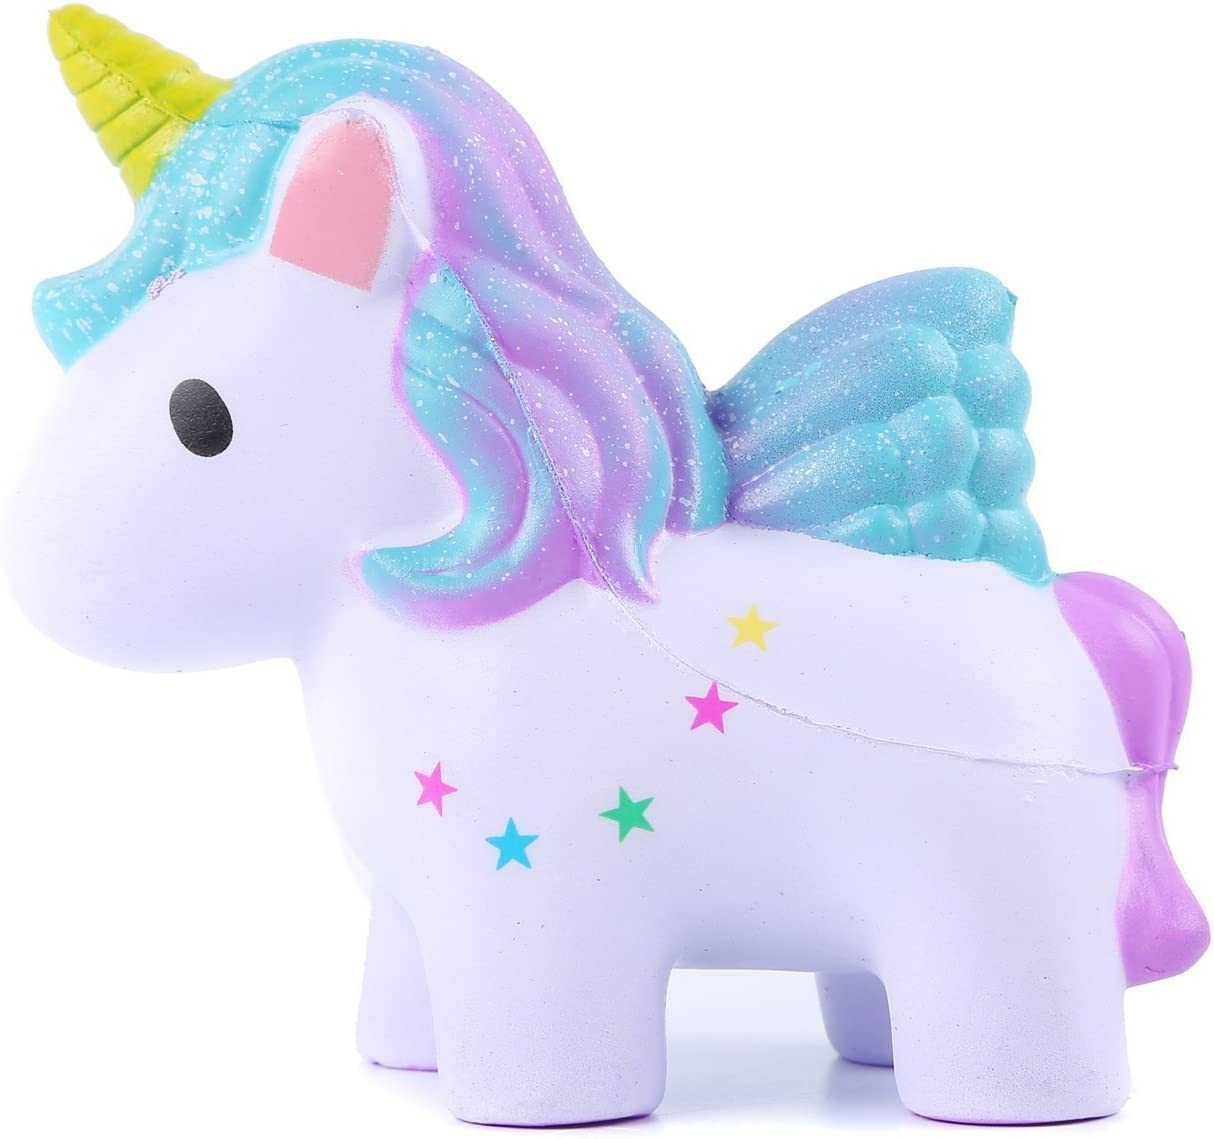 THE LEGENDARY LIFE Kids Squishies: Cute Slow Rising Jumbo Kawaii Creamy Scent Colorful Magic Unicorn Squishy Toy for Parties Stress ADHD ADD Anxiety Autism Complimentary Magical Unicorn Children EBook: Amazon.es: Juguetes y